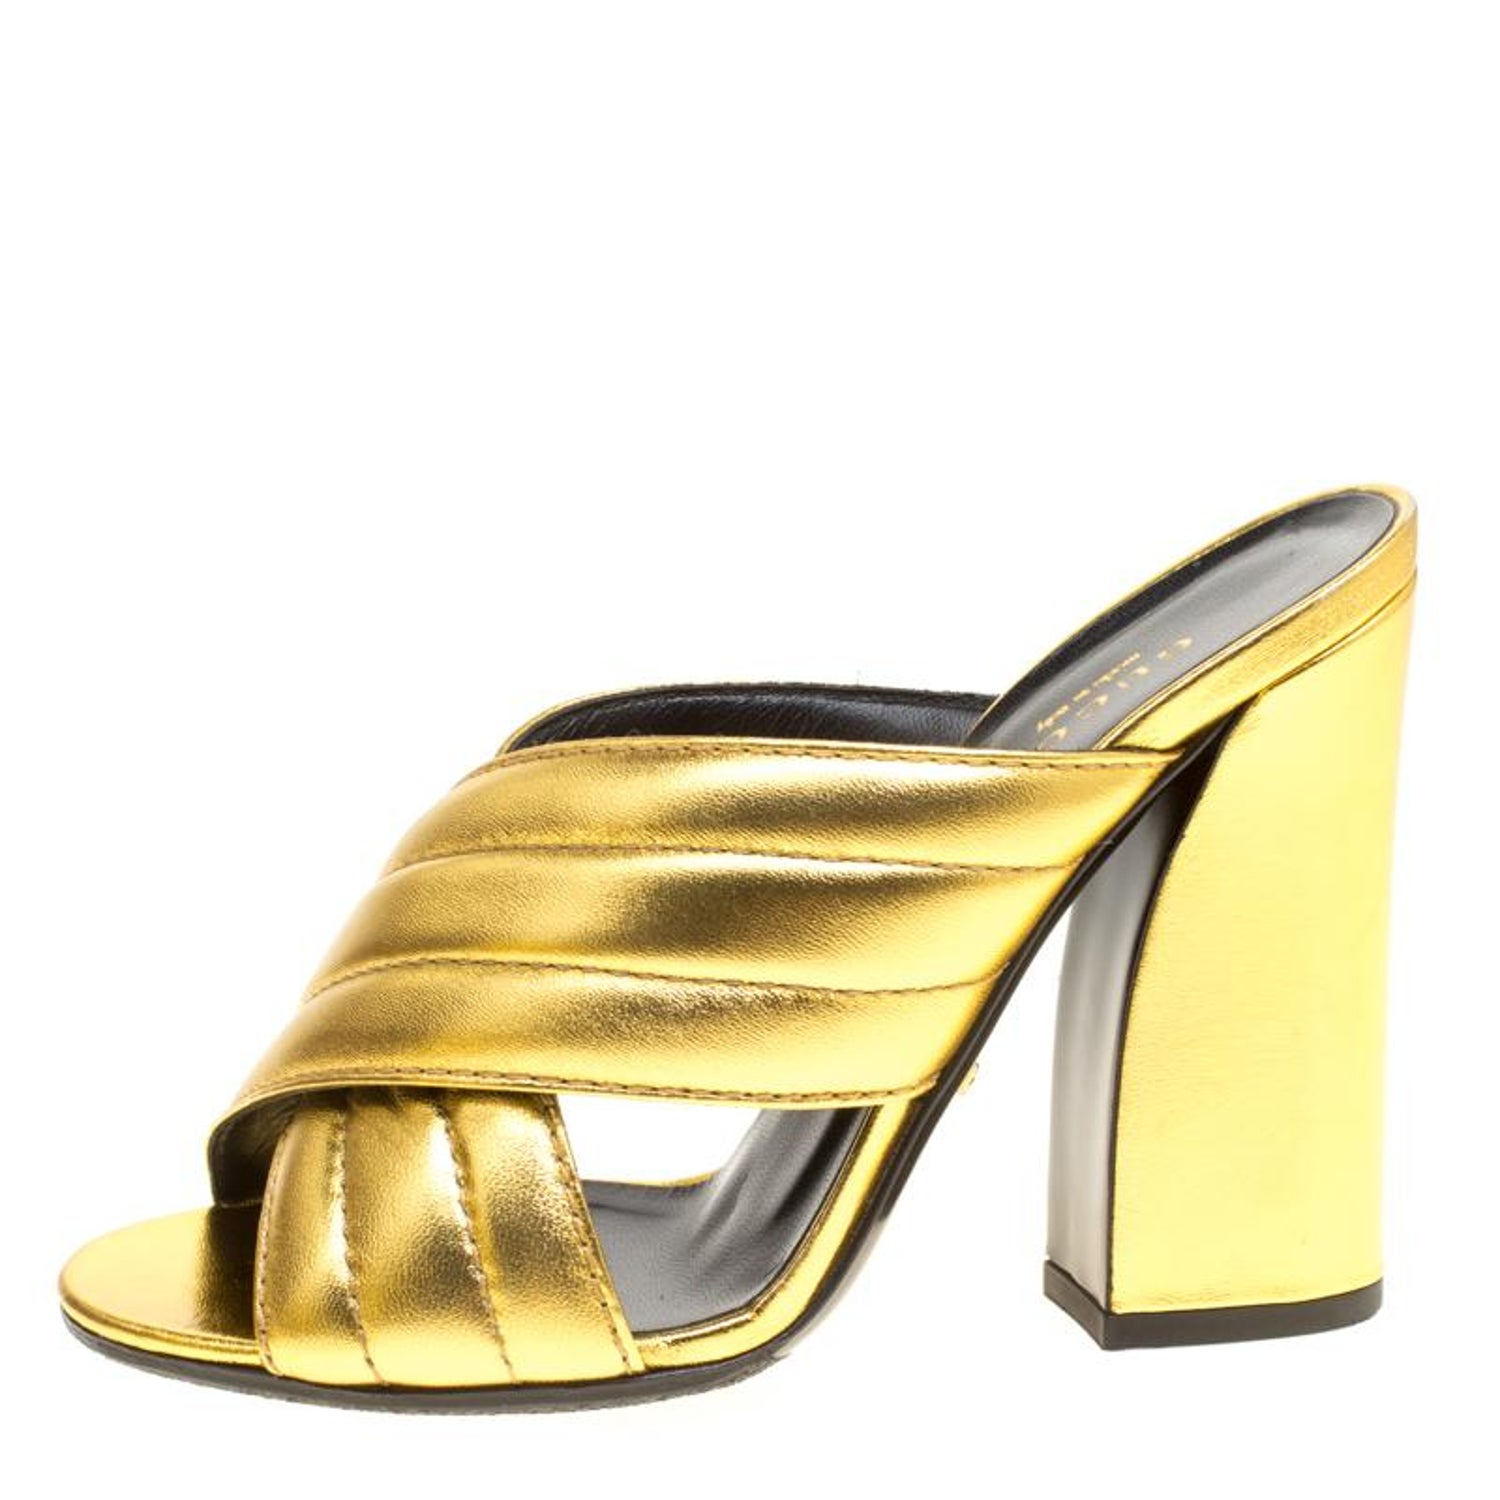 3dc14af1698 Gucci Gold Metallic Leather Sylvia Crossover Mules Size 37 at 1stdibs